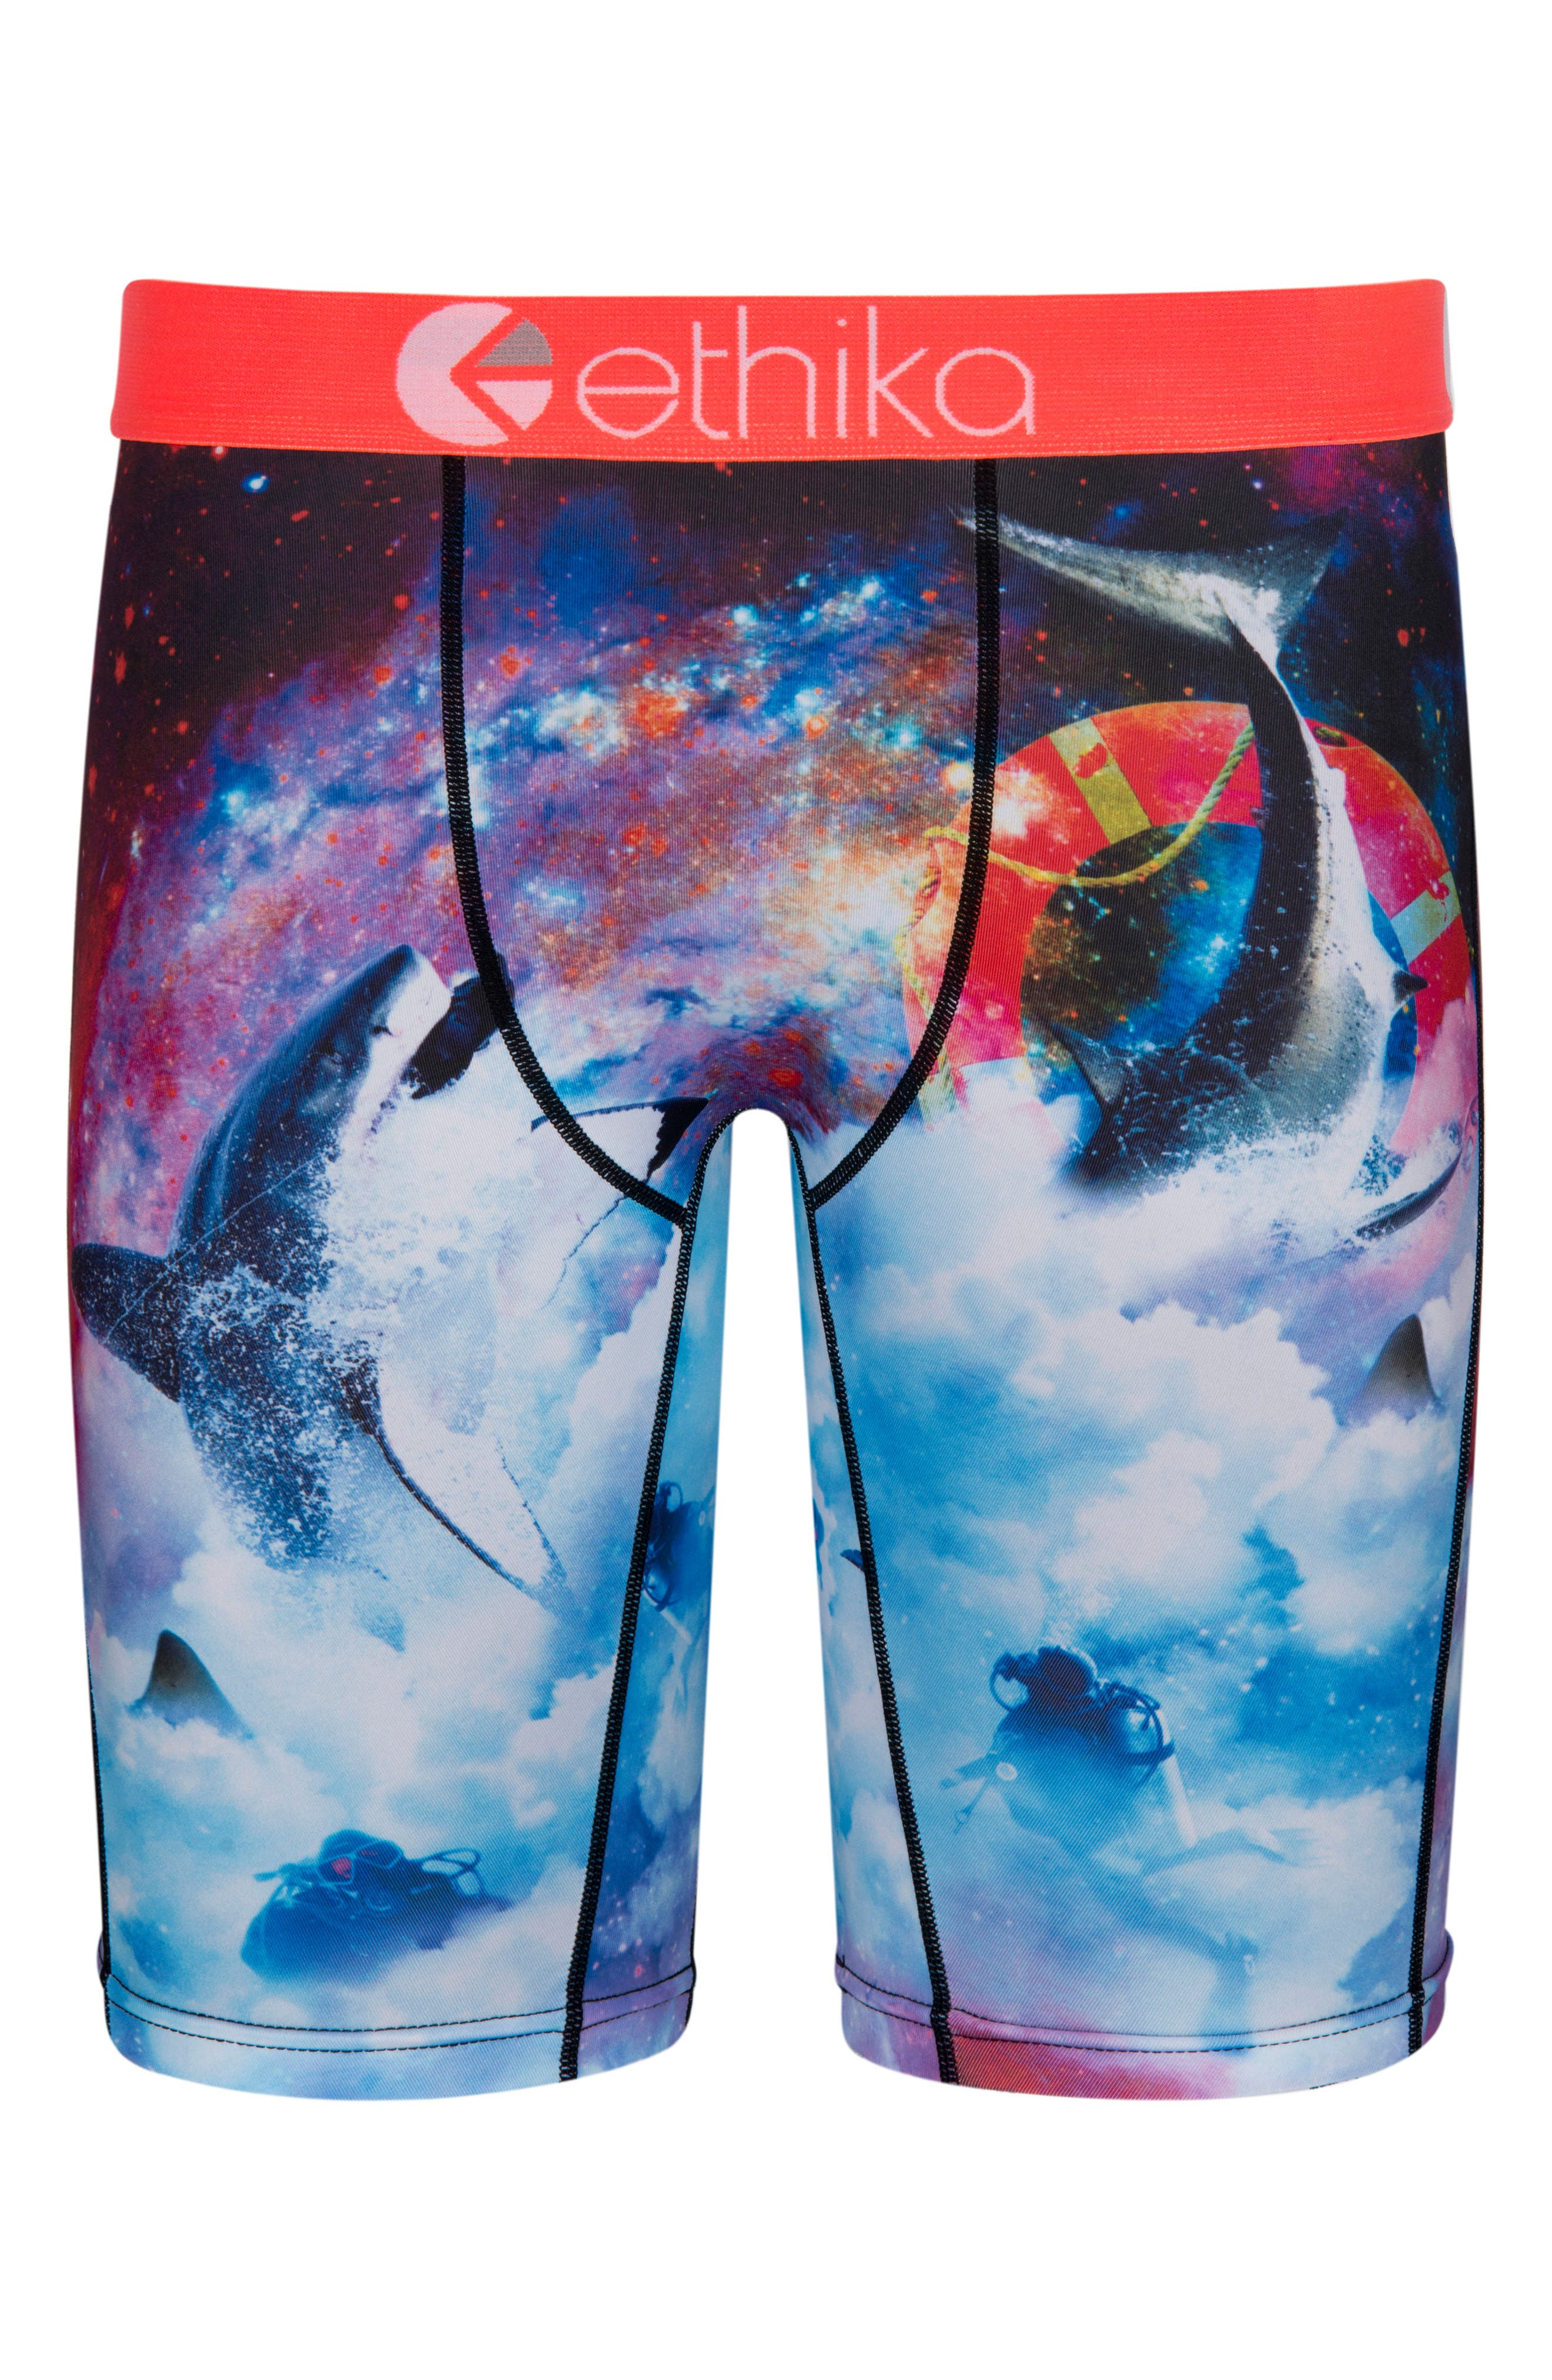 Space Sharks Stretch Boxer Briefs,                             Main thumbnail 1, color,